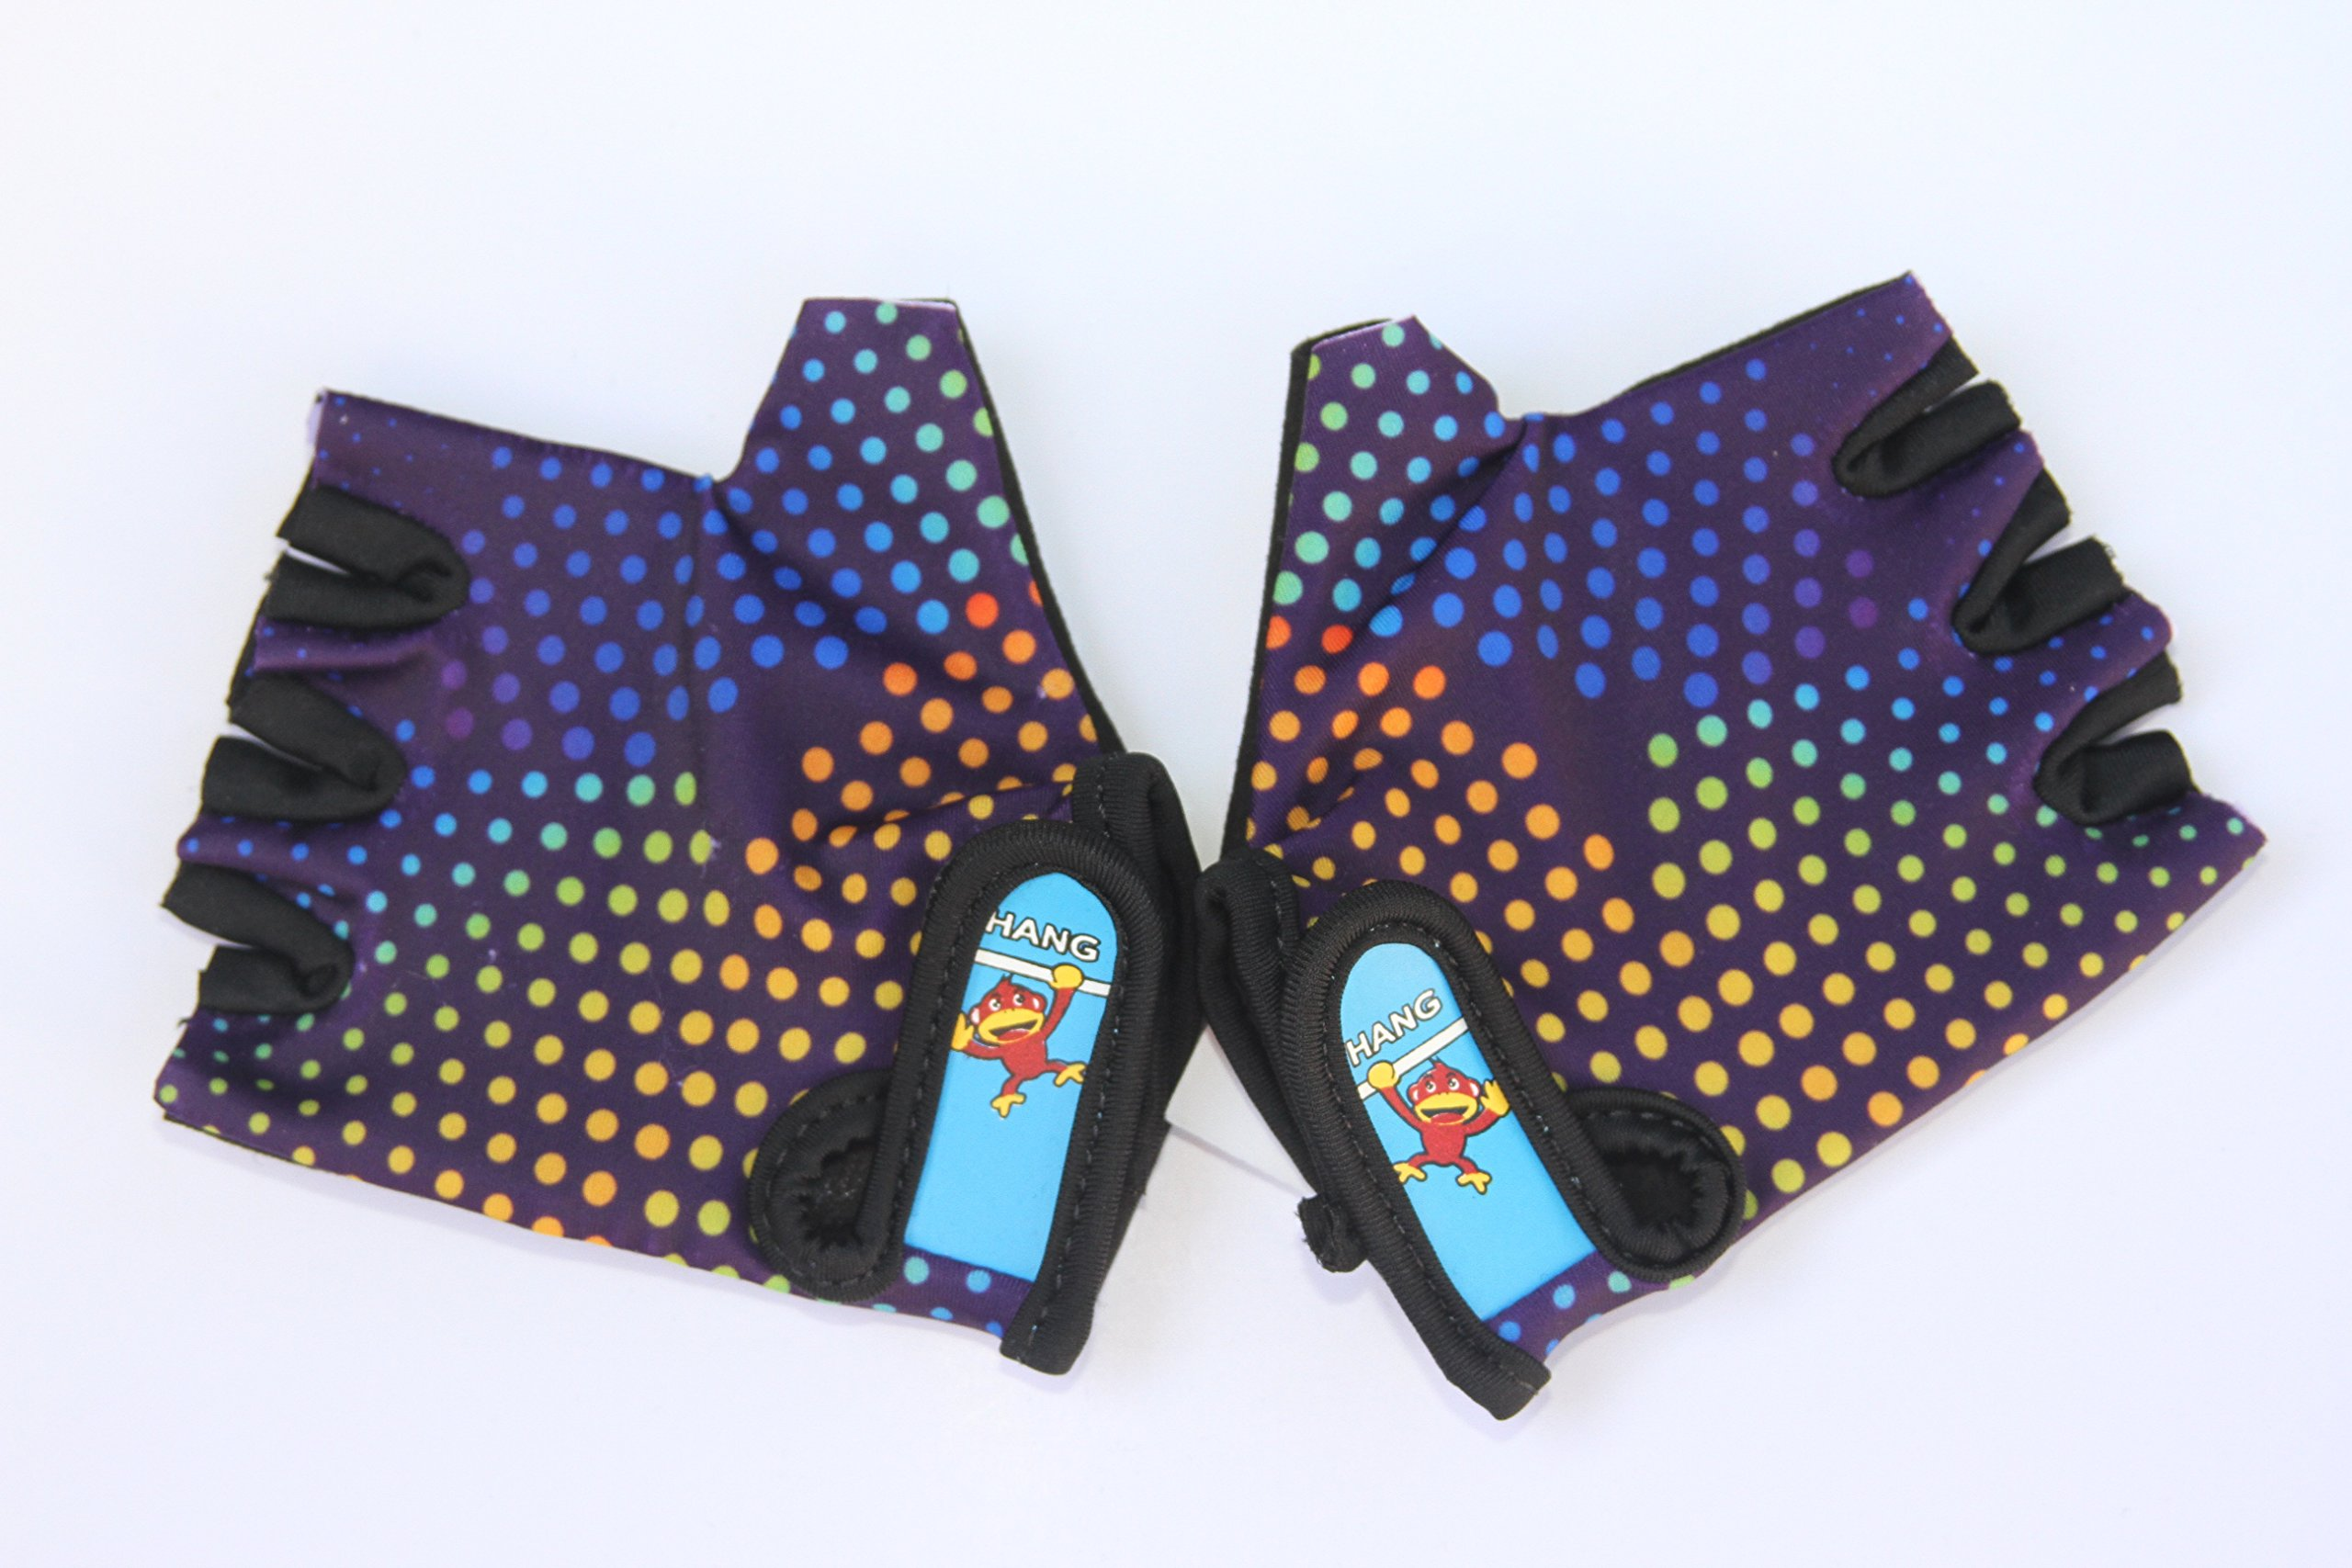 HANG Monkey Bars Gloves/Cycling Gloves (for 7 and 8 Years Old) with Grip Control